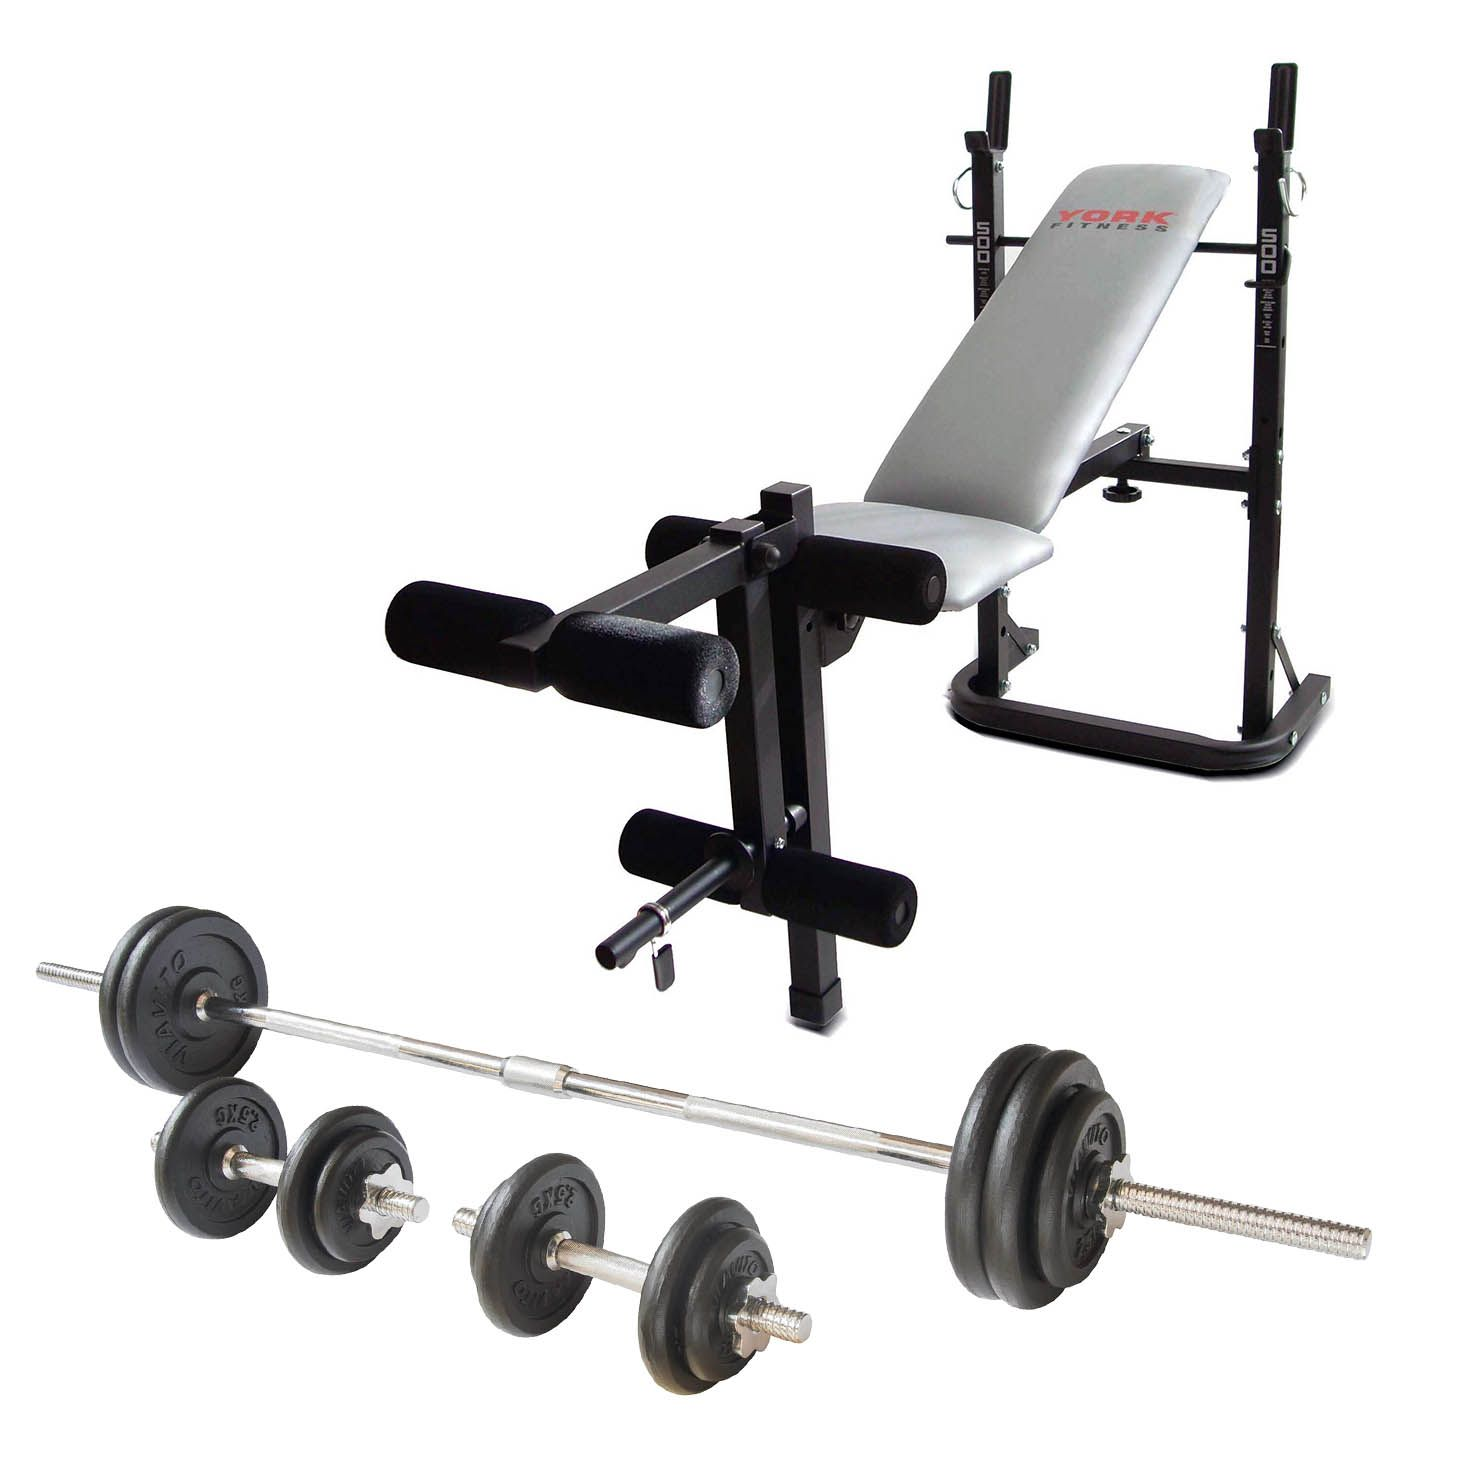 Cheapest Dumbbell Set: York B500 Weight Bench With Viavito 50kg Cast Iron Weight Set